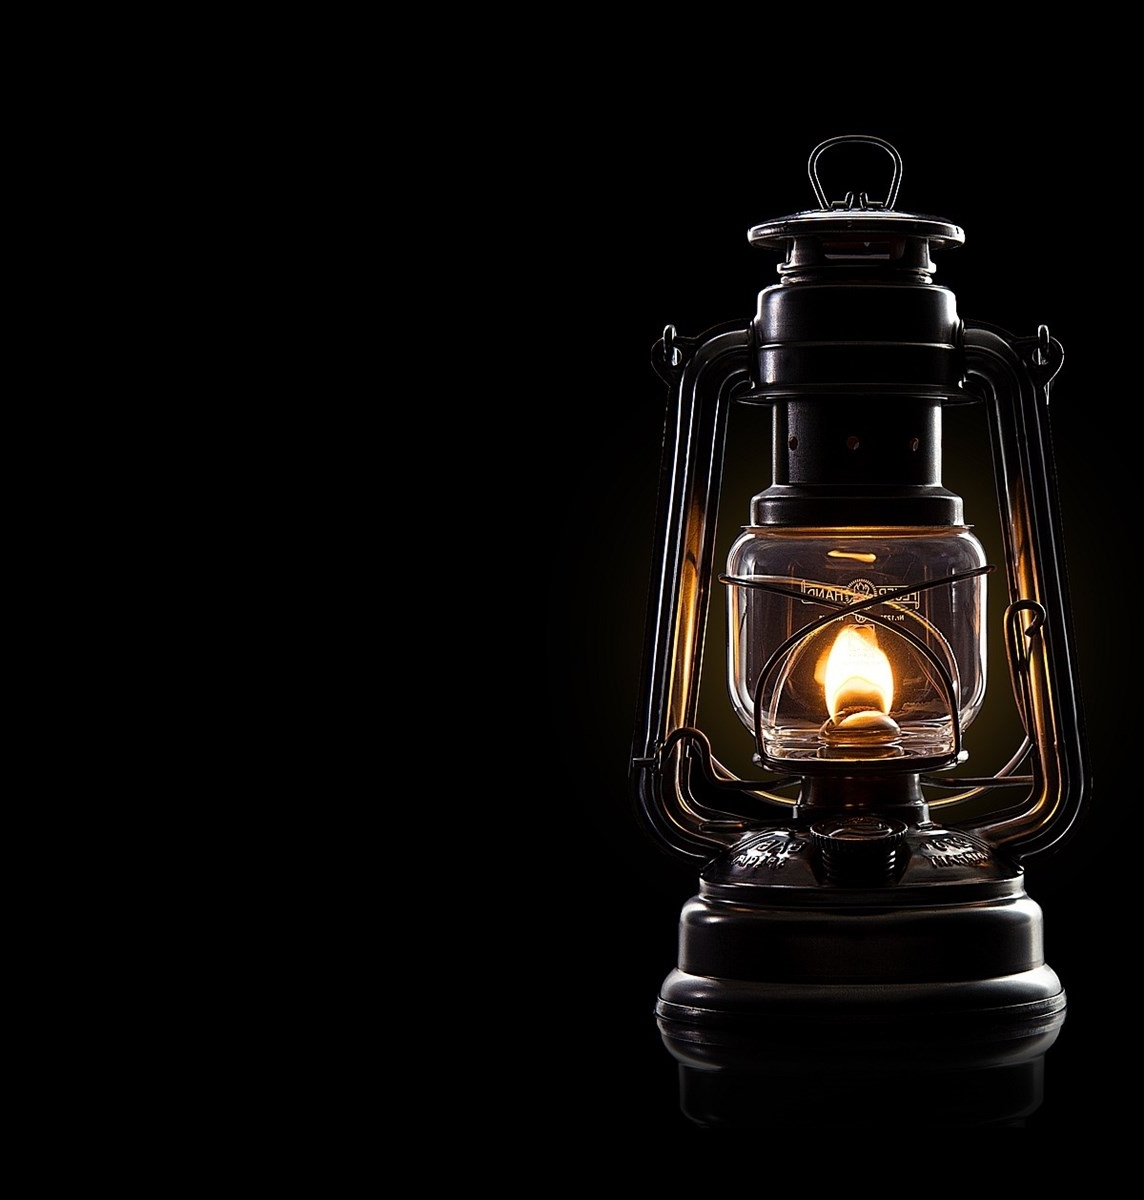 Outdoor Storm Lanterns For Well Liked Original Feuerhand Storm Lamps In All Colours – Savvysurf.co (View 17 of 20)